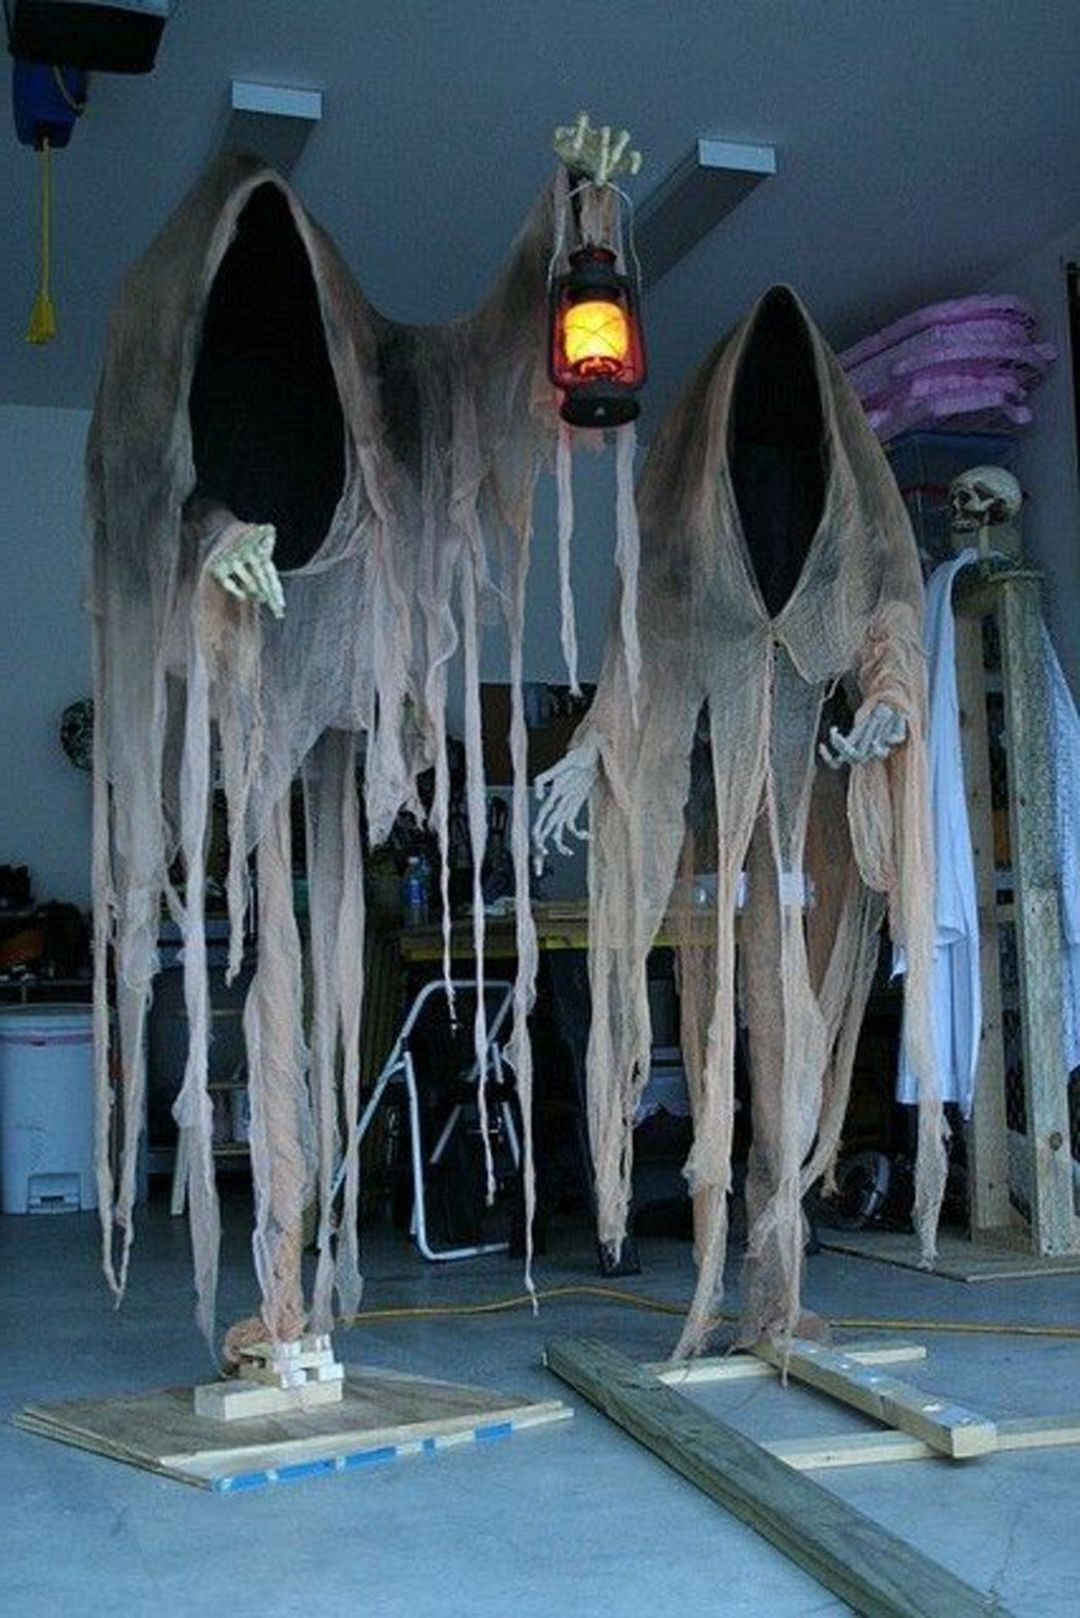 25 Most Scary Diy Halloween Decorating Ideas That Easy To Copy Scary Halloween Decorations Diy Scary Halloween Decorations Halloween Outdoor Decorations